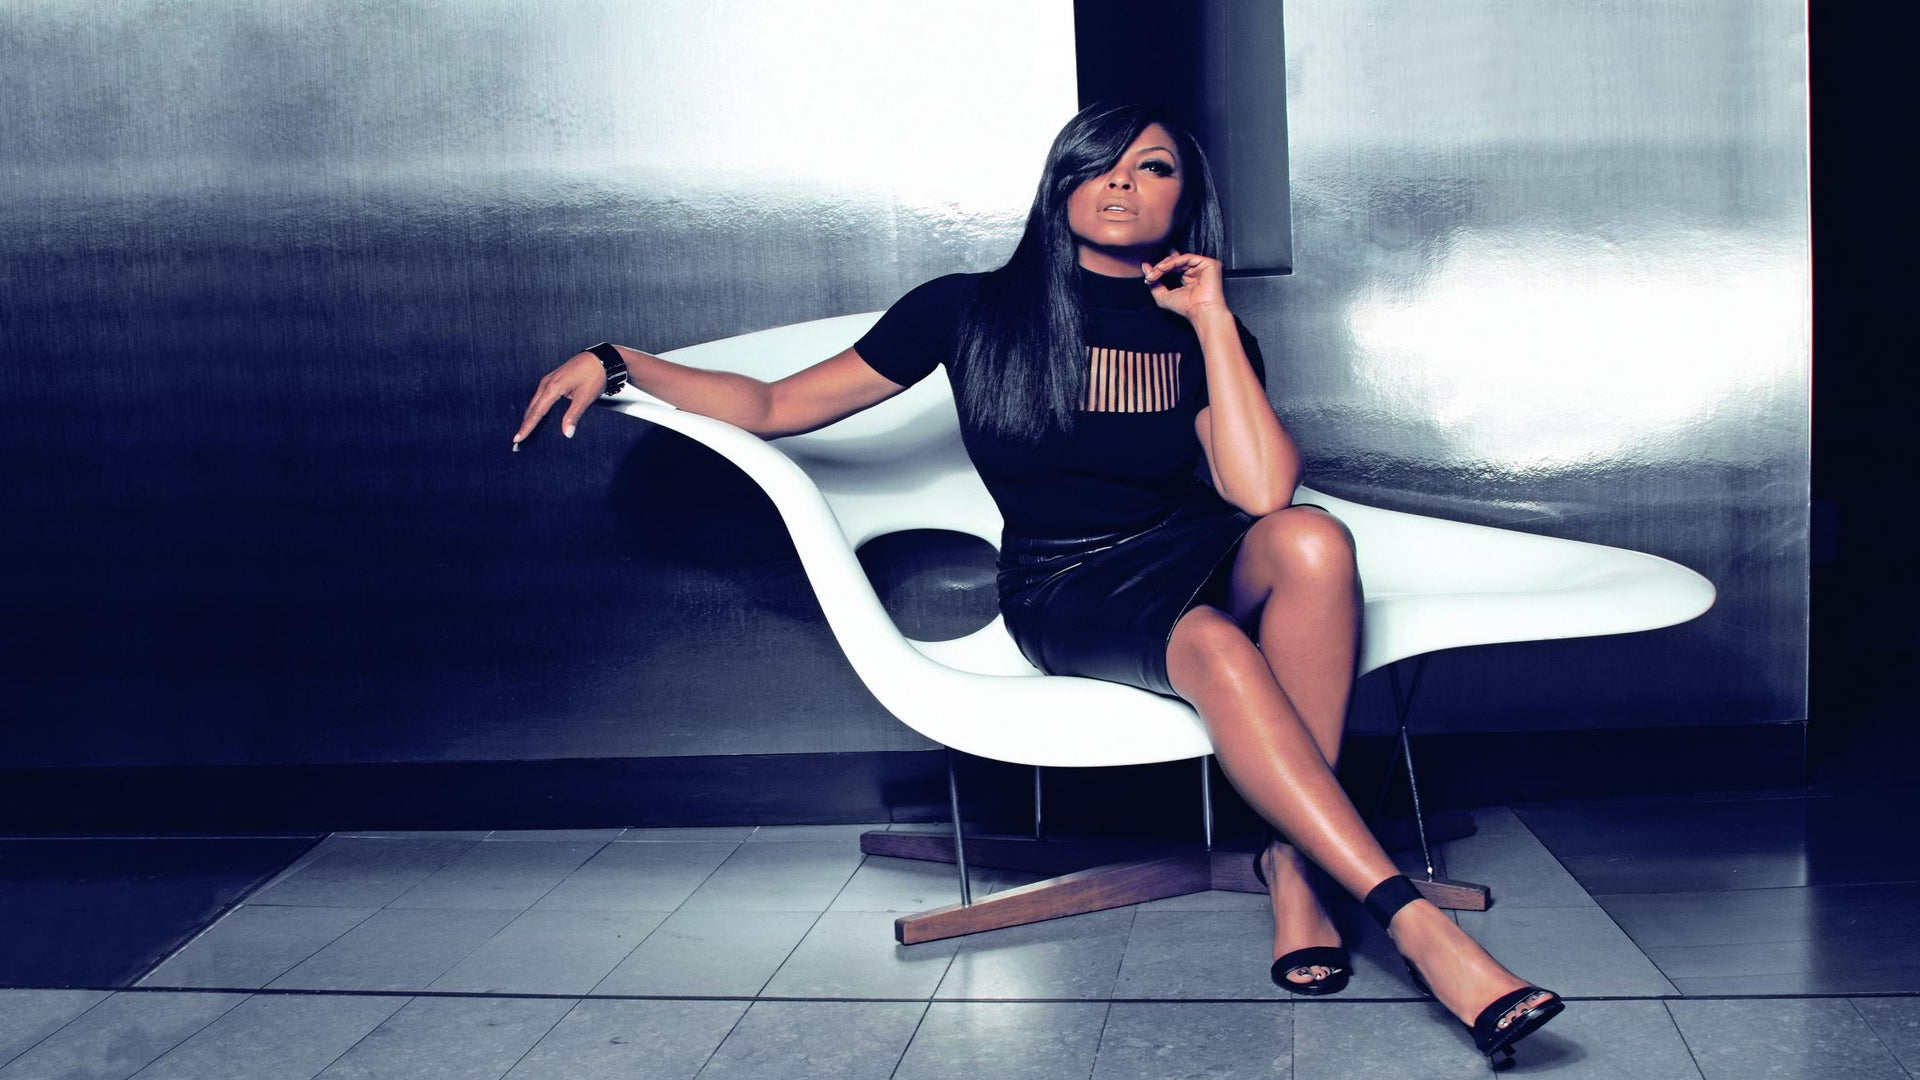 Why 'Empire's' Taraji P. Henson is Our New TV Obsession